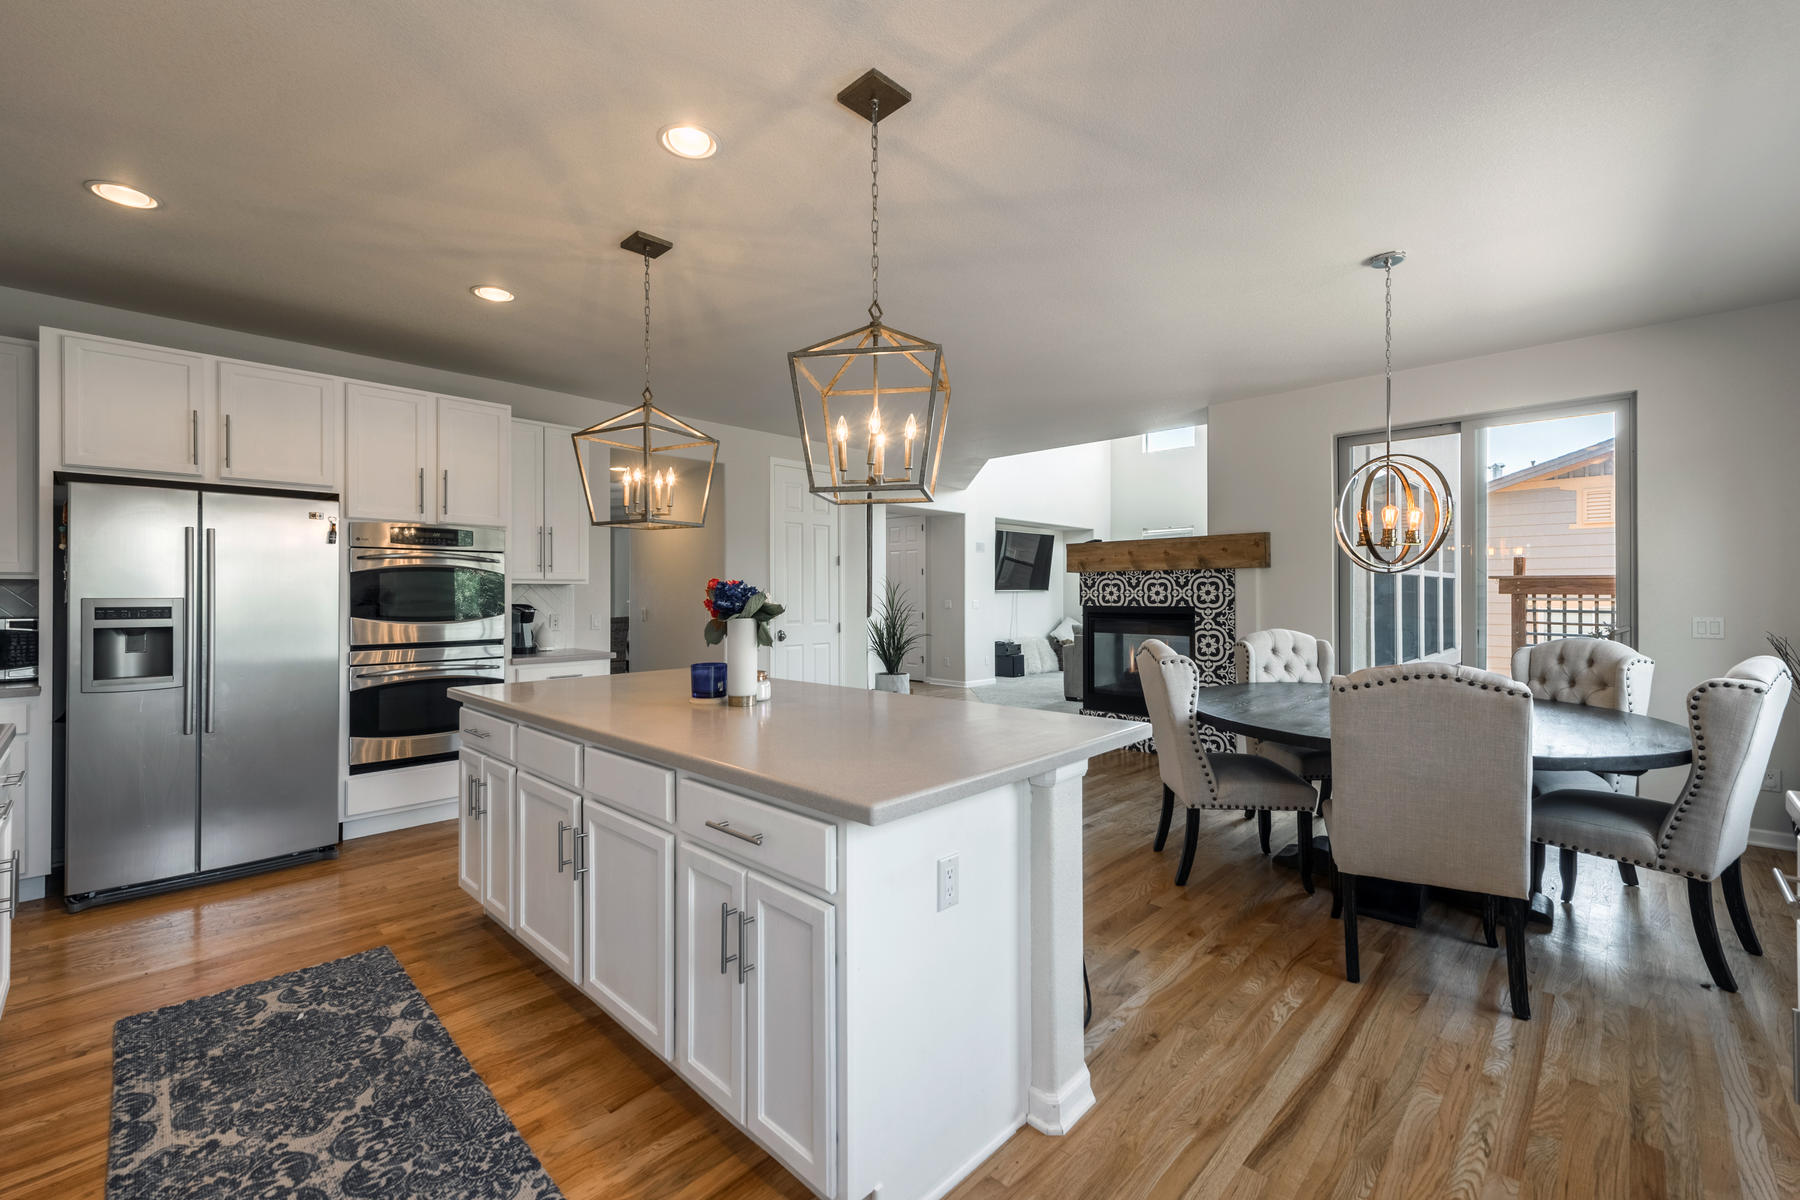 Single Family Home for Active at LOOKS LIKE A MODEL !!!!! 25261 E Glasglow Pl Aurora, Colorado 80016 United States